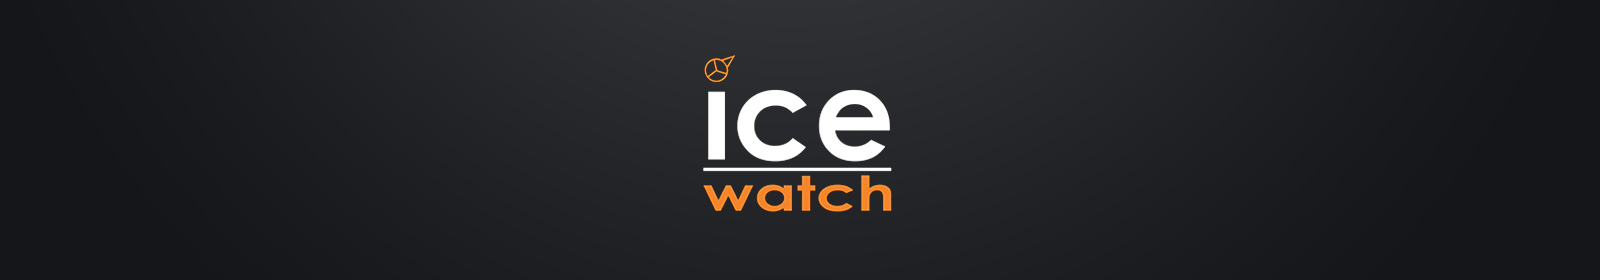 Ceasuri ICE-WATCH